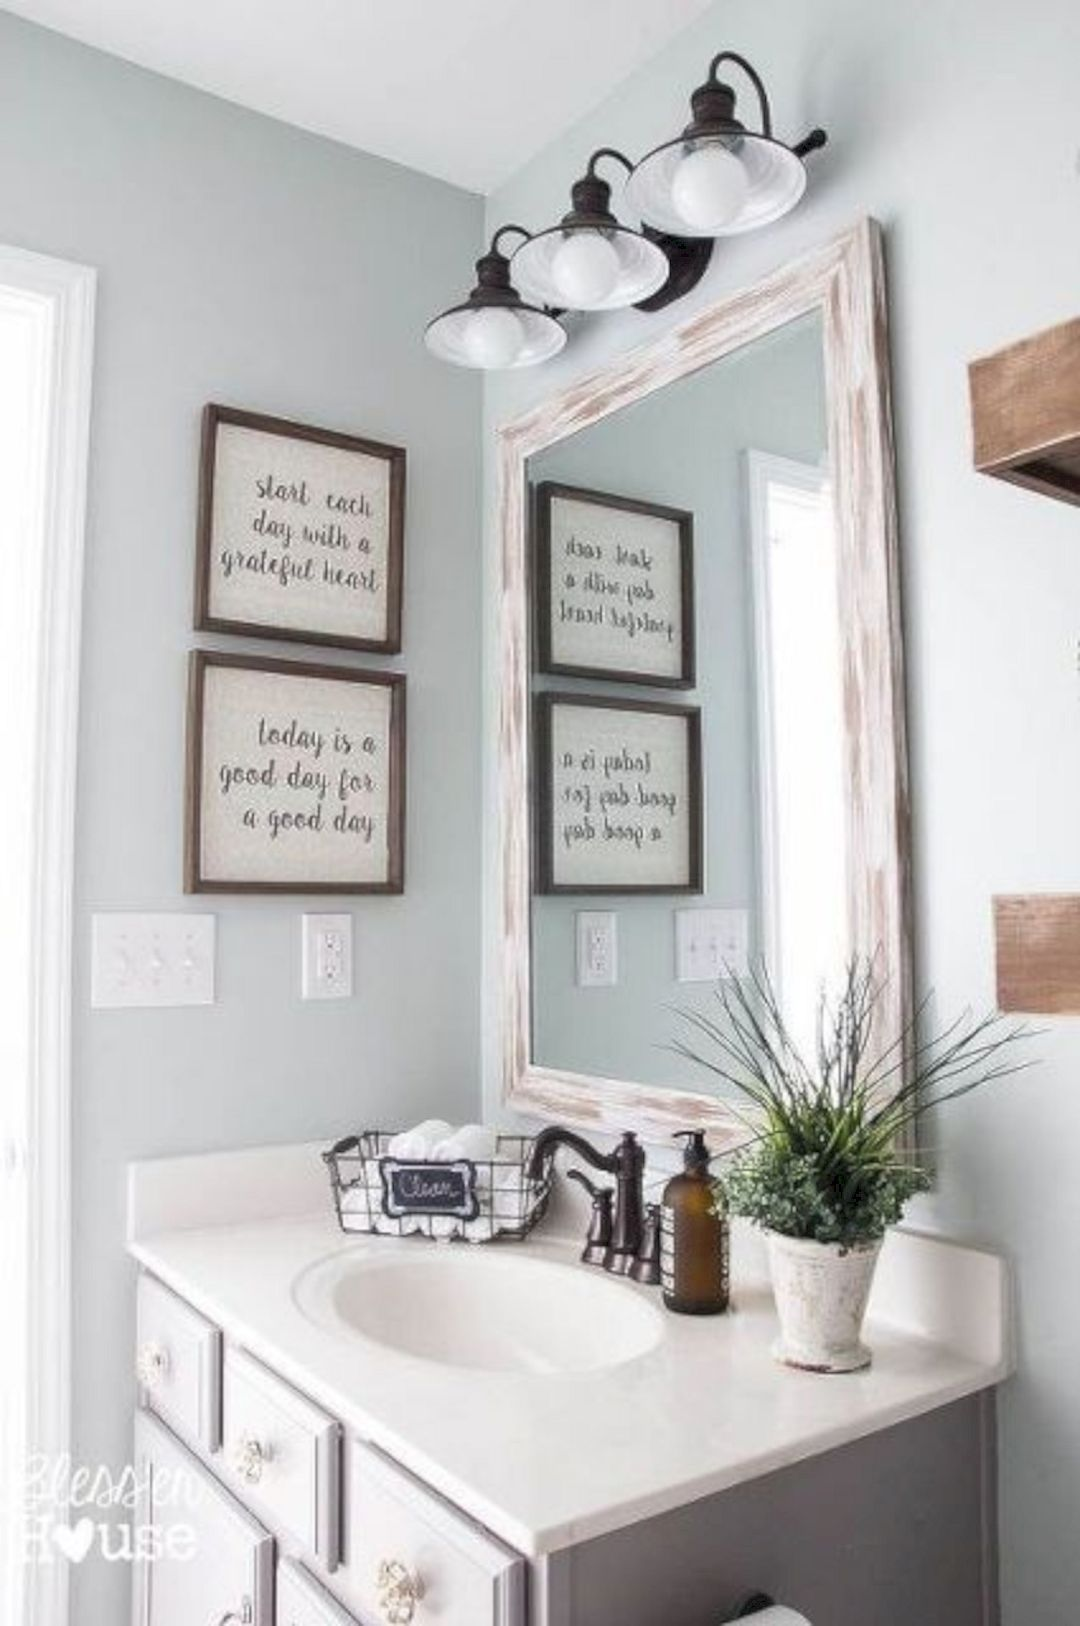 39 Wonderful Farmhouse Bathroom Decor Ideas https://www ... on updating kitchen on a budget, kitchen ideas paint, kitchen remodel, beautiful kitchens on a budget, kitchen countertops on a budget, kitchen ideas color, kitchen ideas product, kitchen island designs, home improvement on a budget, kitchen design ideas, kitchen makeovers on a budget, kitchen storage ideas, kitchen cabinets, kitchen lighting ideas, kitchen ideas for 2014, kitchen countertop ideas, kitchen ideas decorating, kitchen island ideas, ikea kitchen on a budget, kitchen ideas modern,